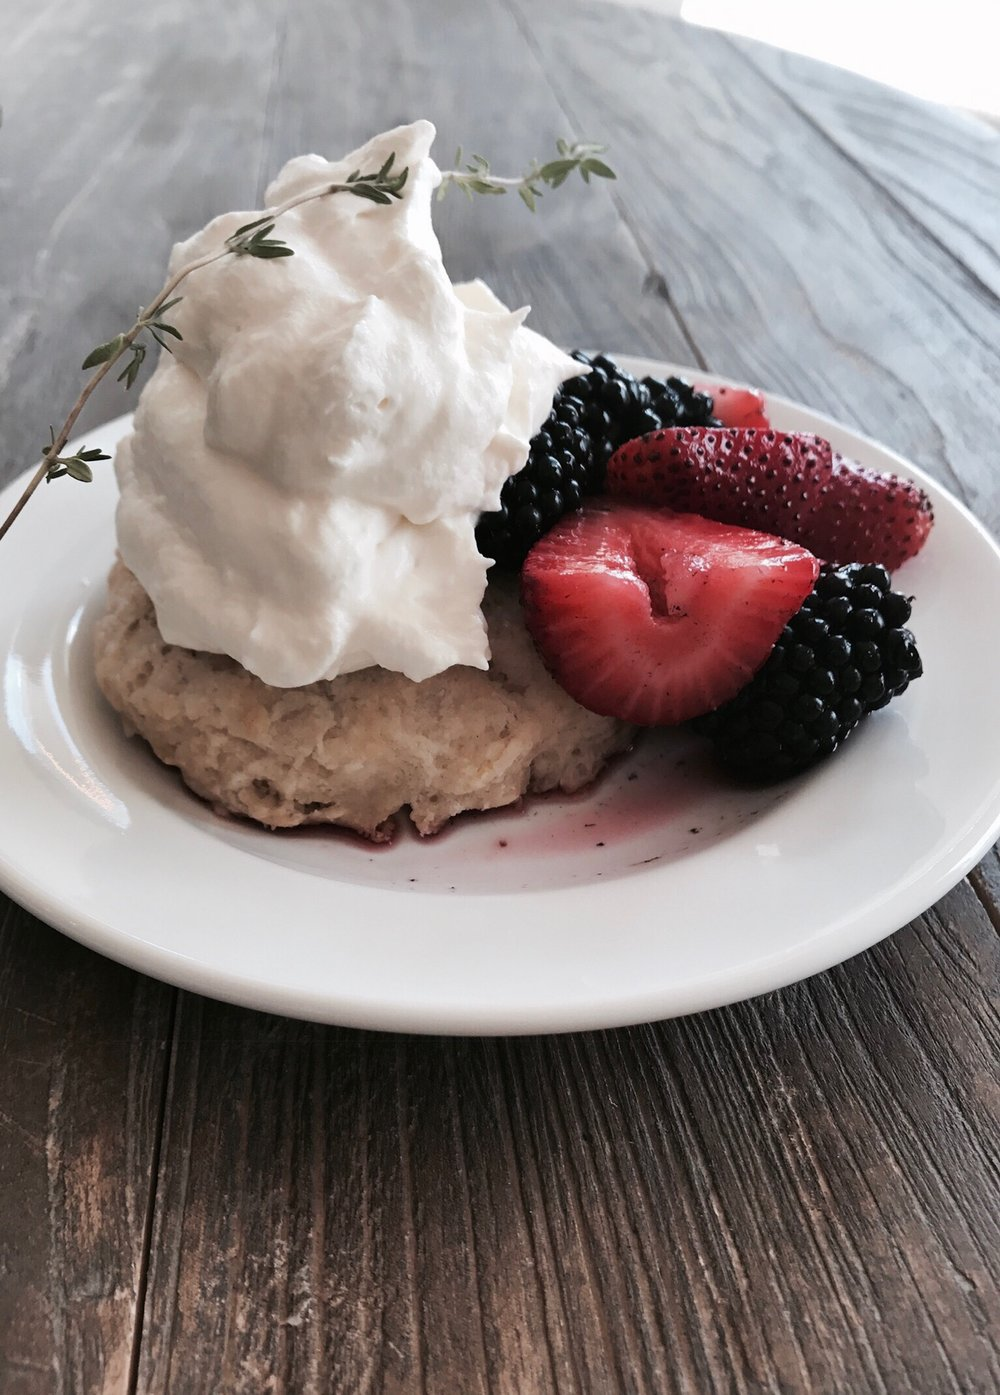 Berry Shortcake with that whipped cream perfection…great job!!